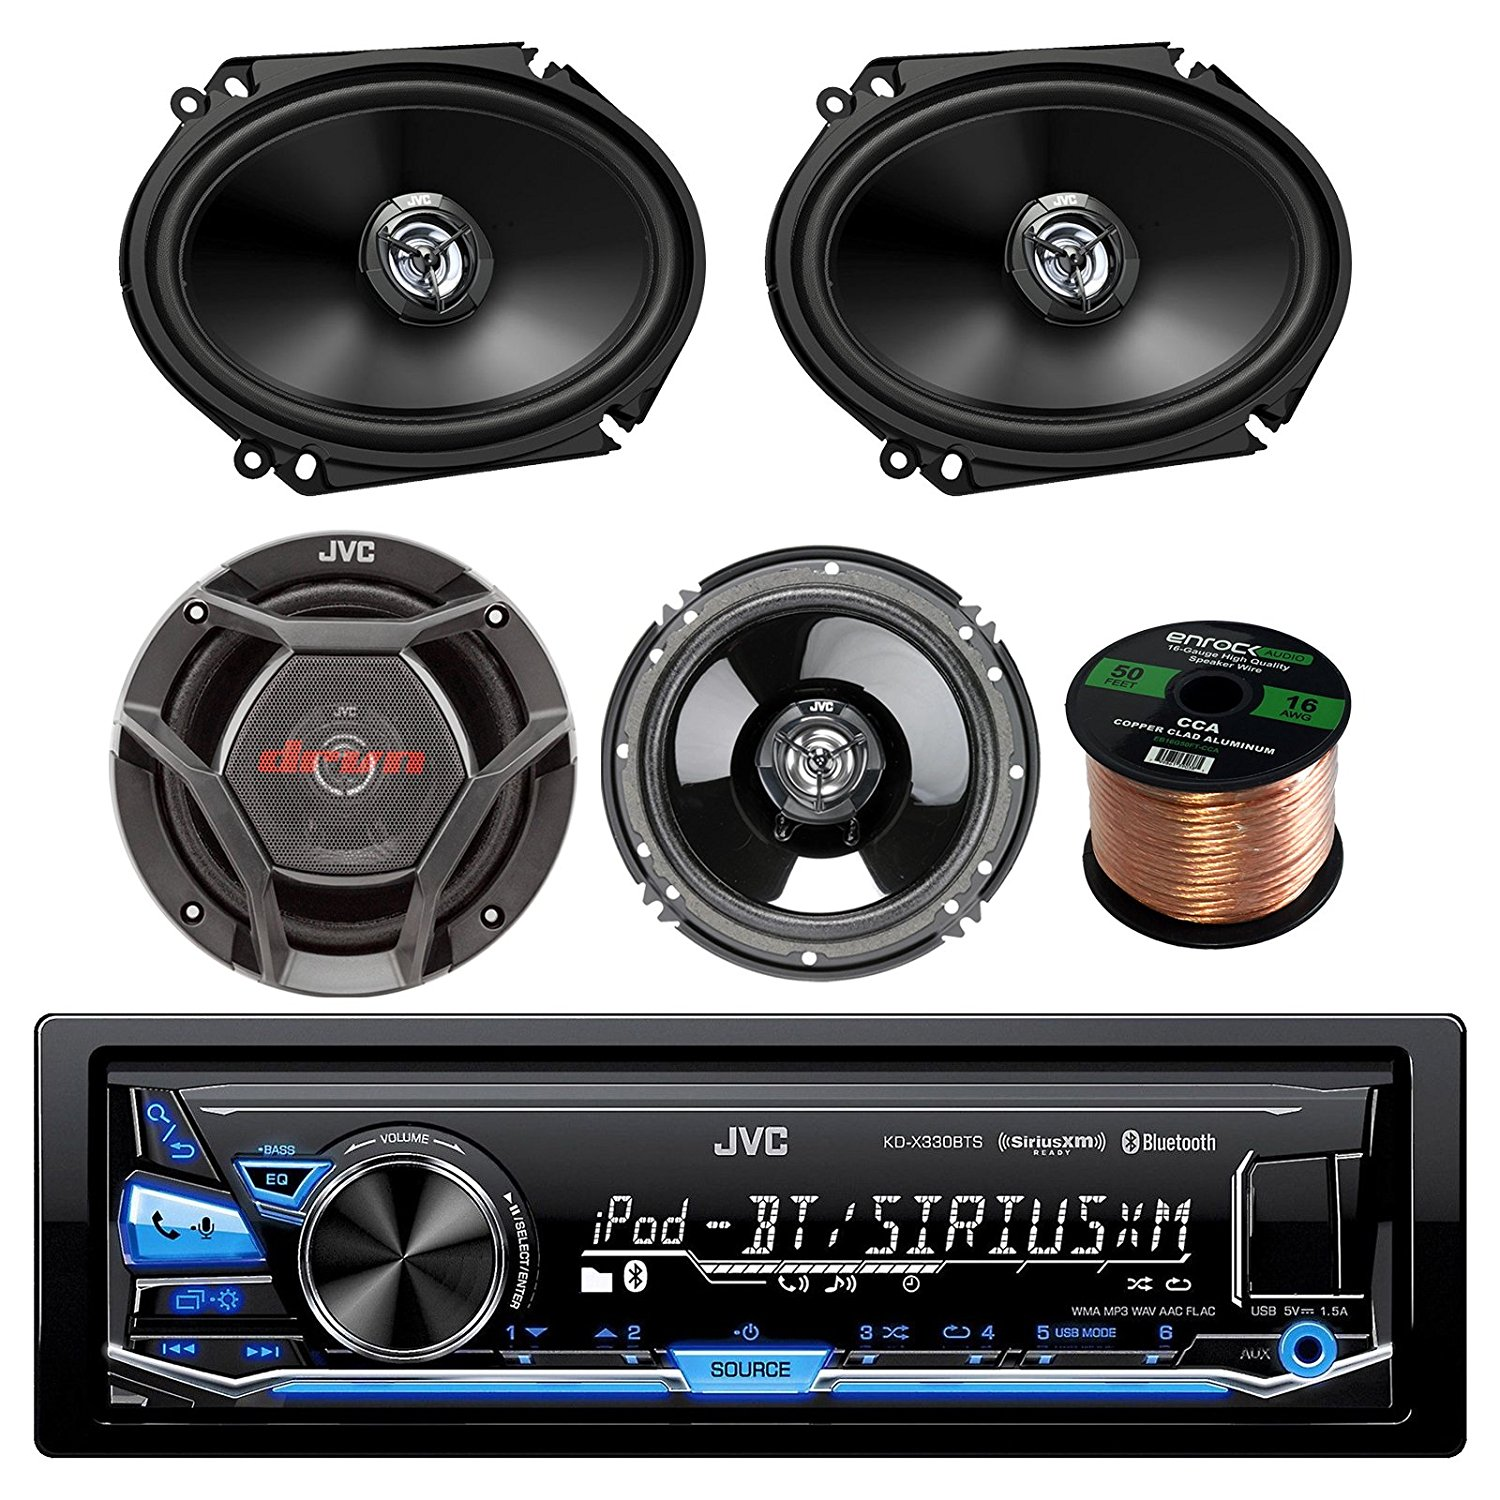 "JVC KD-X330BTS AM/FM USB AUX Car Stereo Receiver Bundle Combo With 2x CS-DR6820 300-Watt 6x8"" Inch Vehicle Coaxial Speakers + 2x CS-DR620 6.5"" Inch 2-Way Audio Speakers + Enrock 50 Feet 16-Gauge Wire"